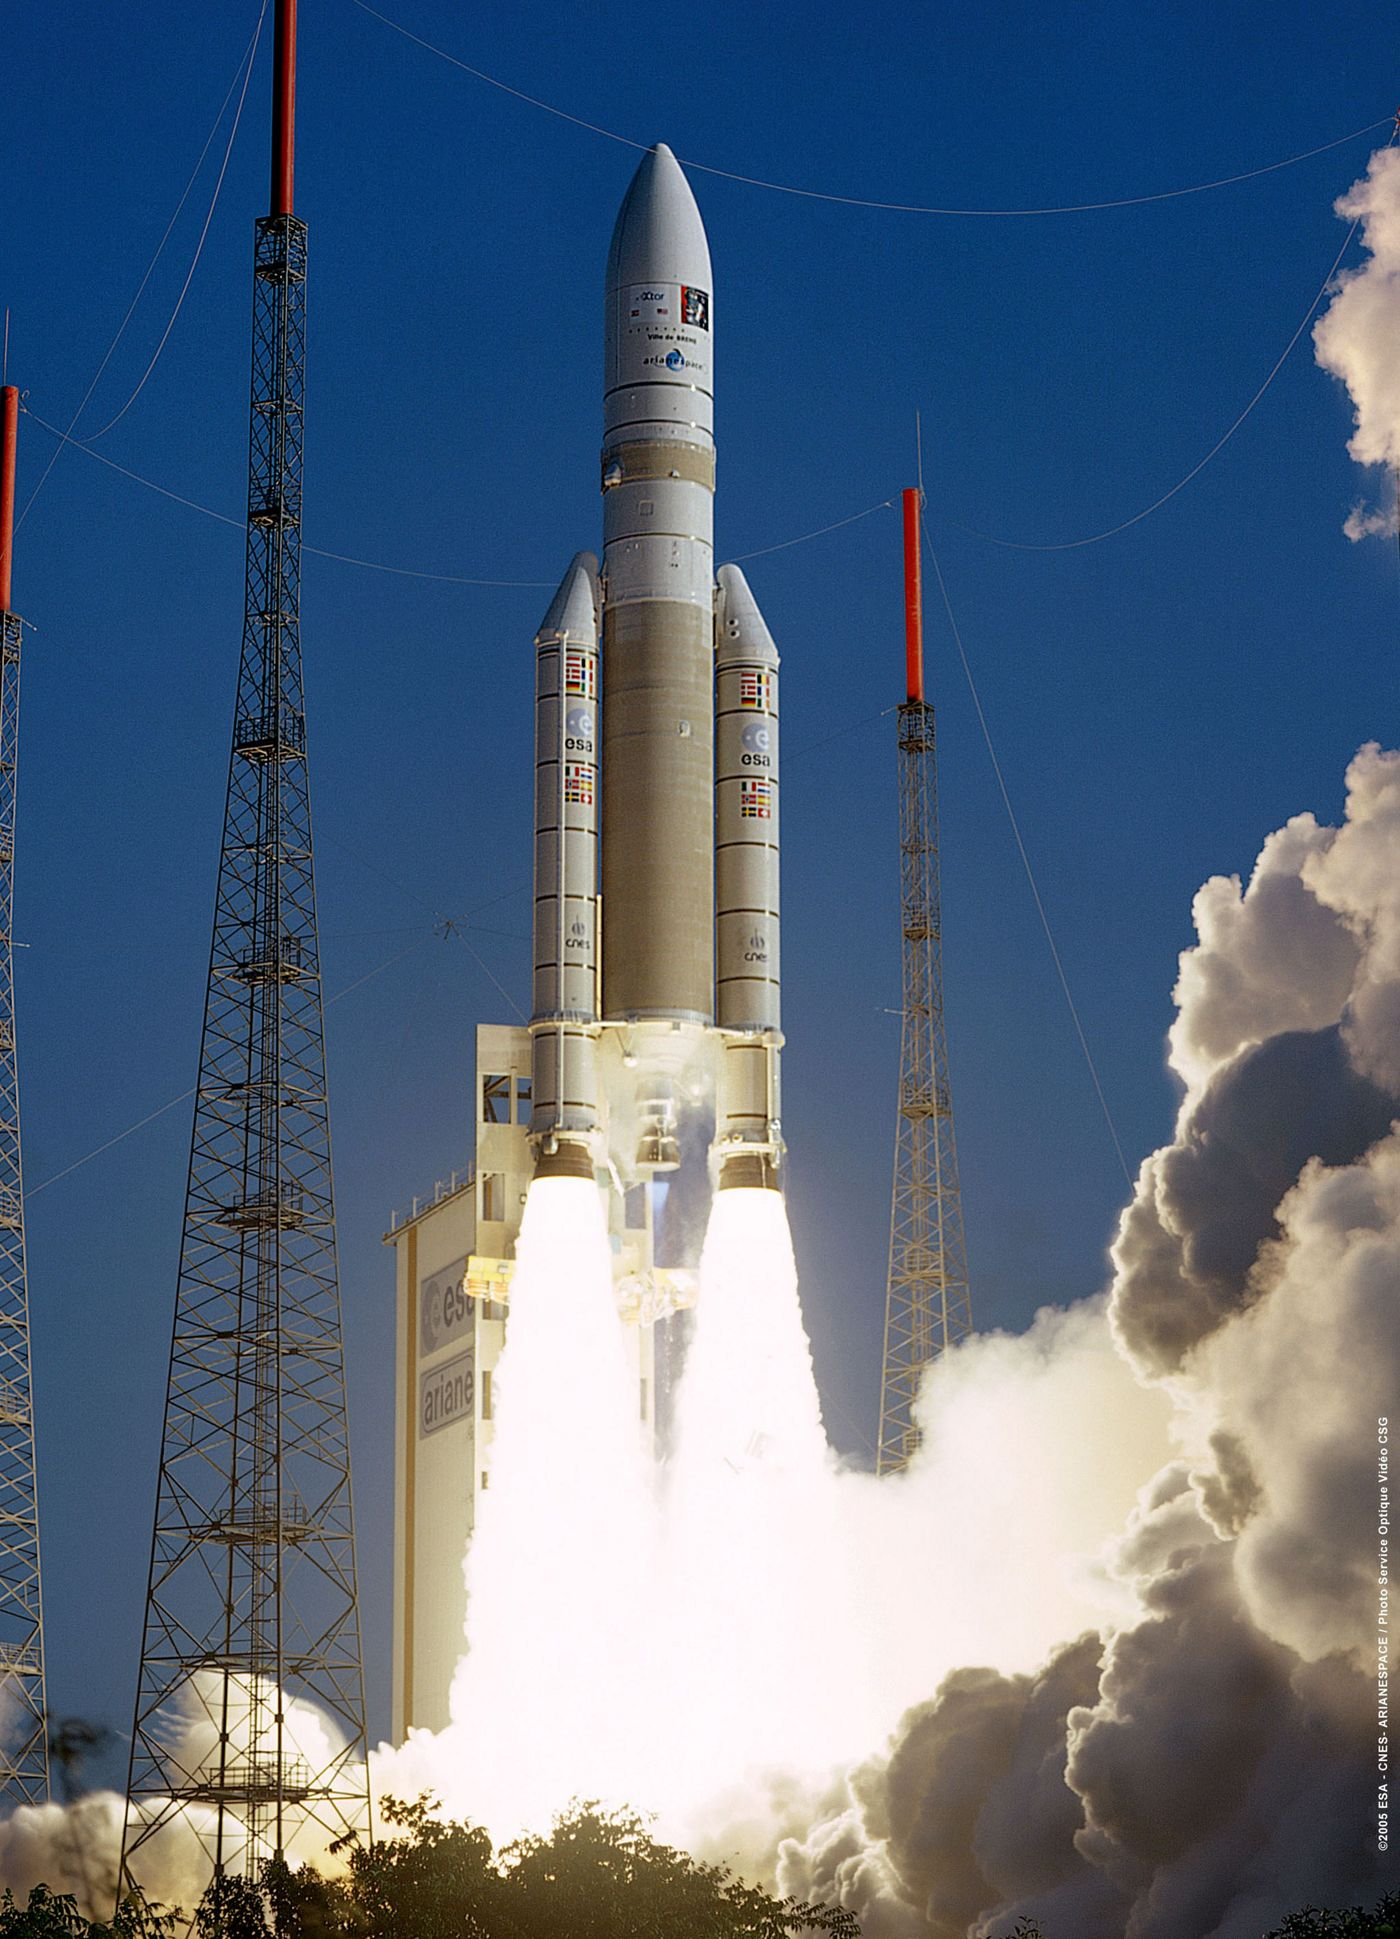 Airbus Defence and Space takes care of the launch operations